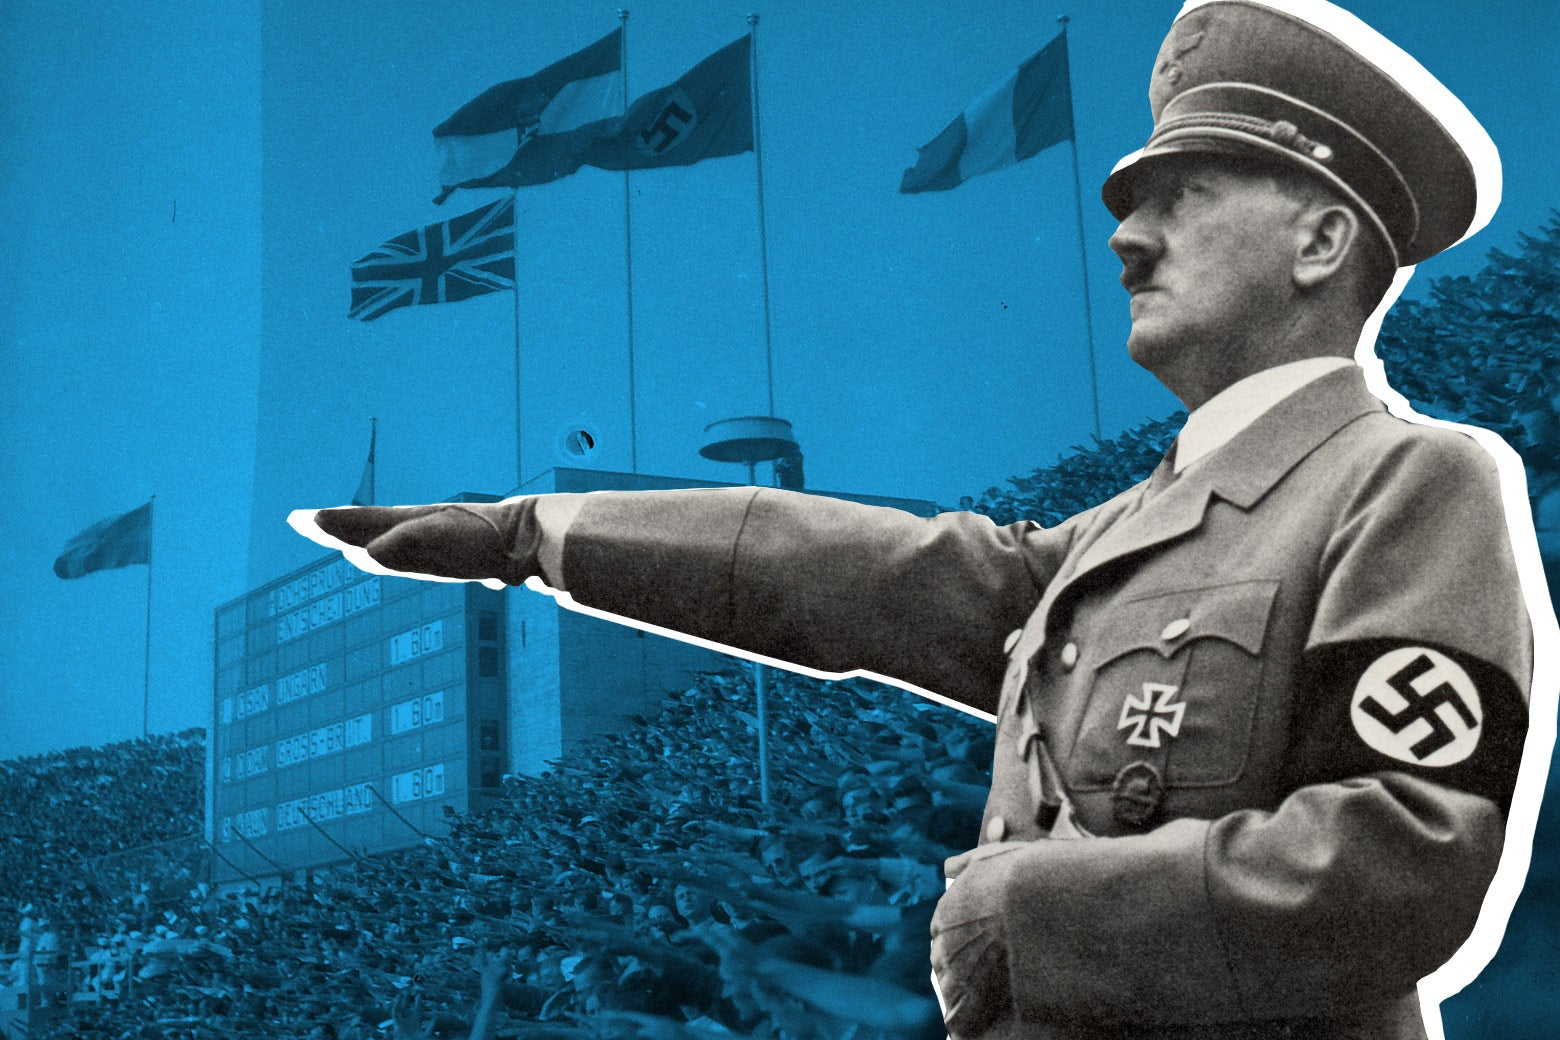 Adolf Hitler salutes the teams during the opening ceremony of the XI Olympiad on Aug. 1, 1936 in Berlin.